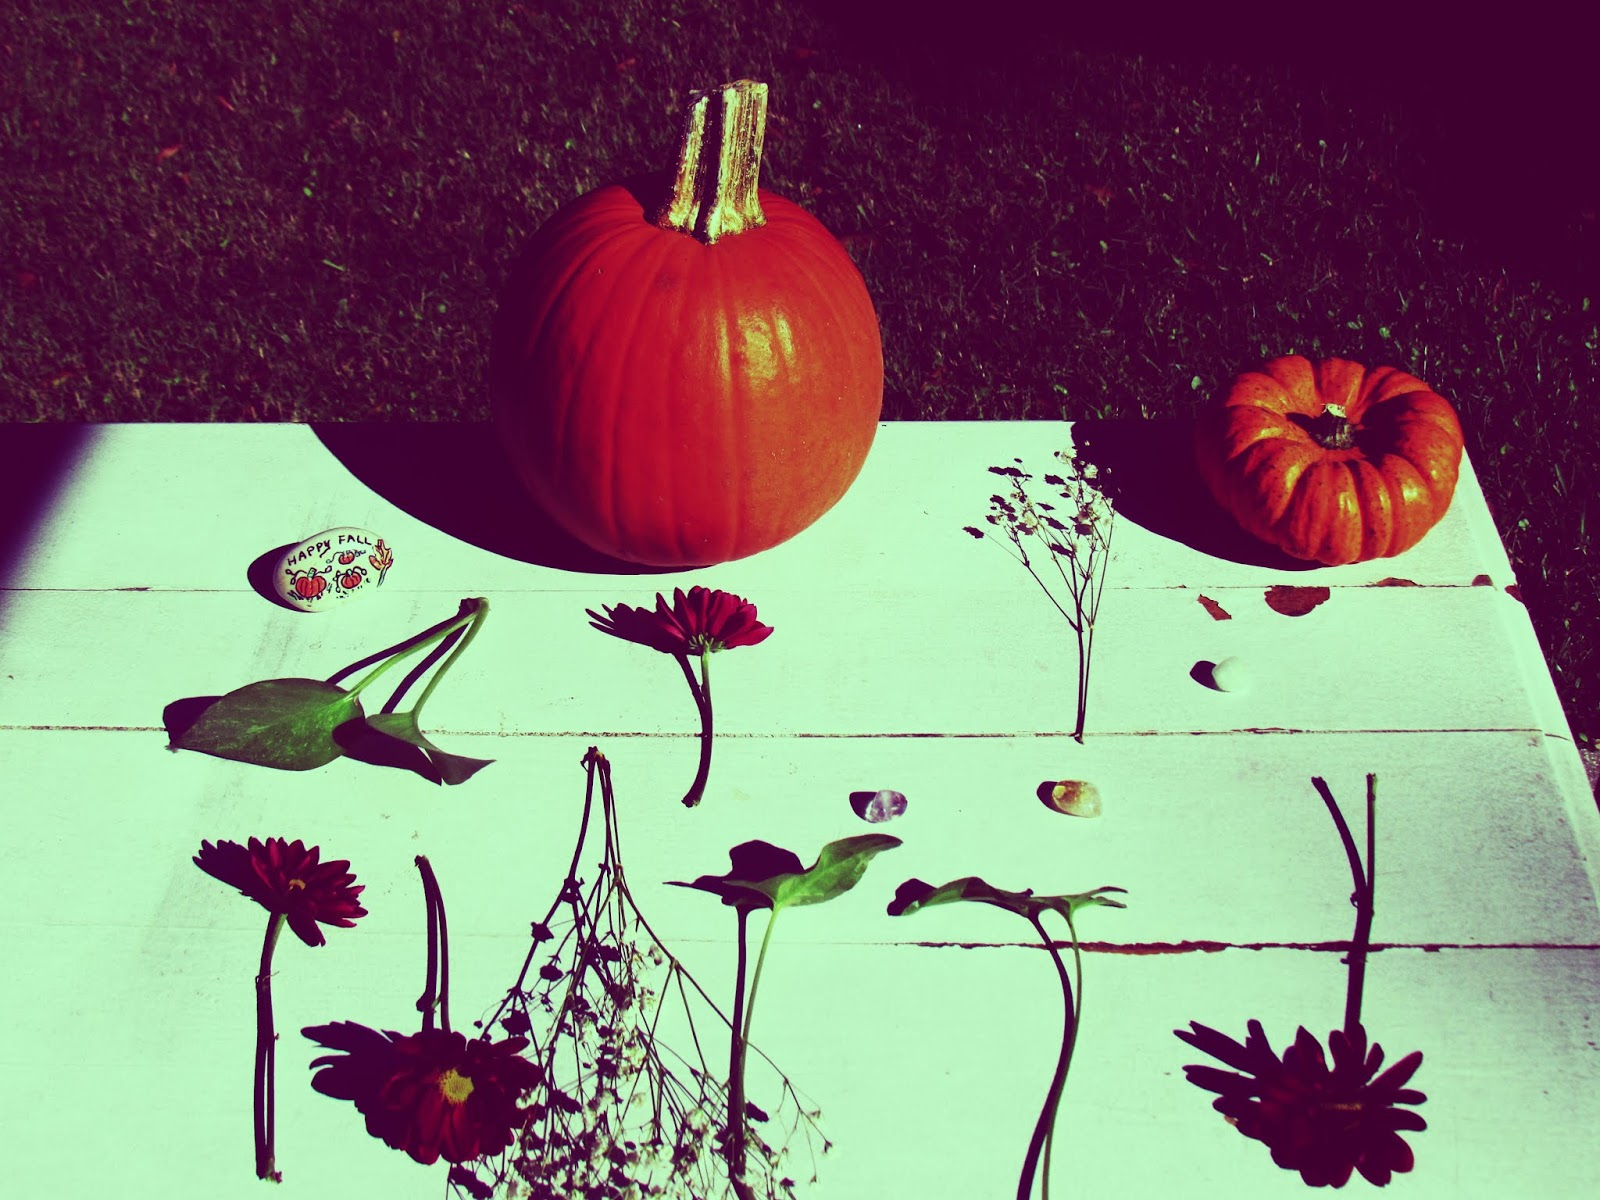 Green Wedding Design and Outdoor Fall Display + Floral Art Design